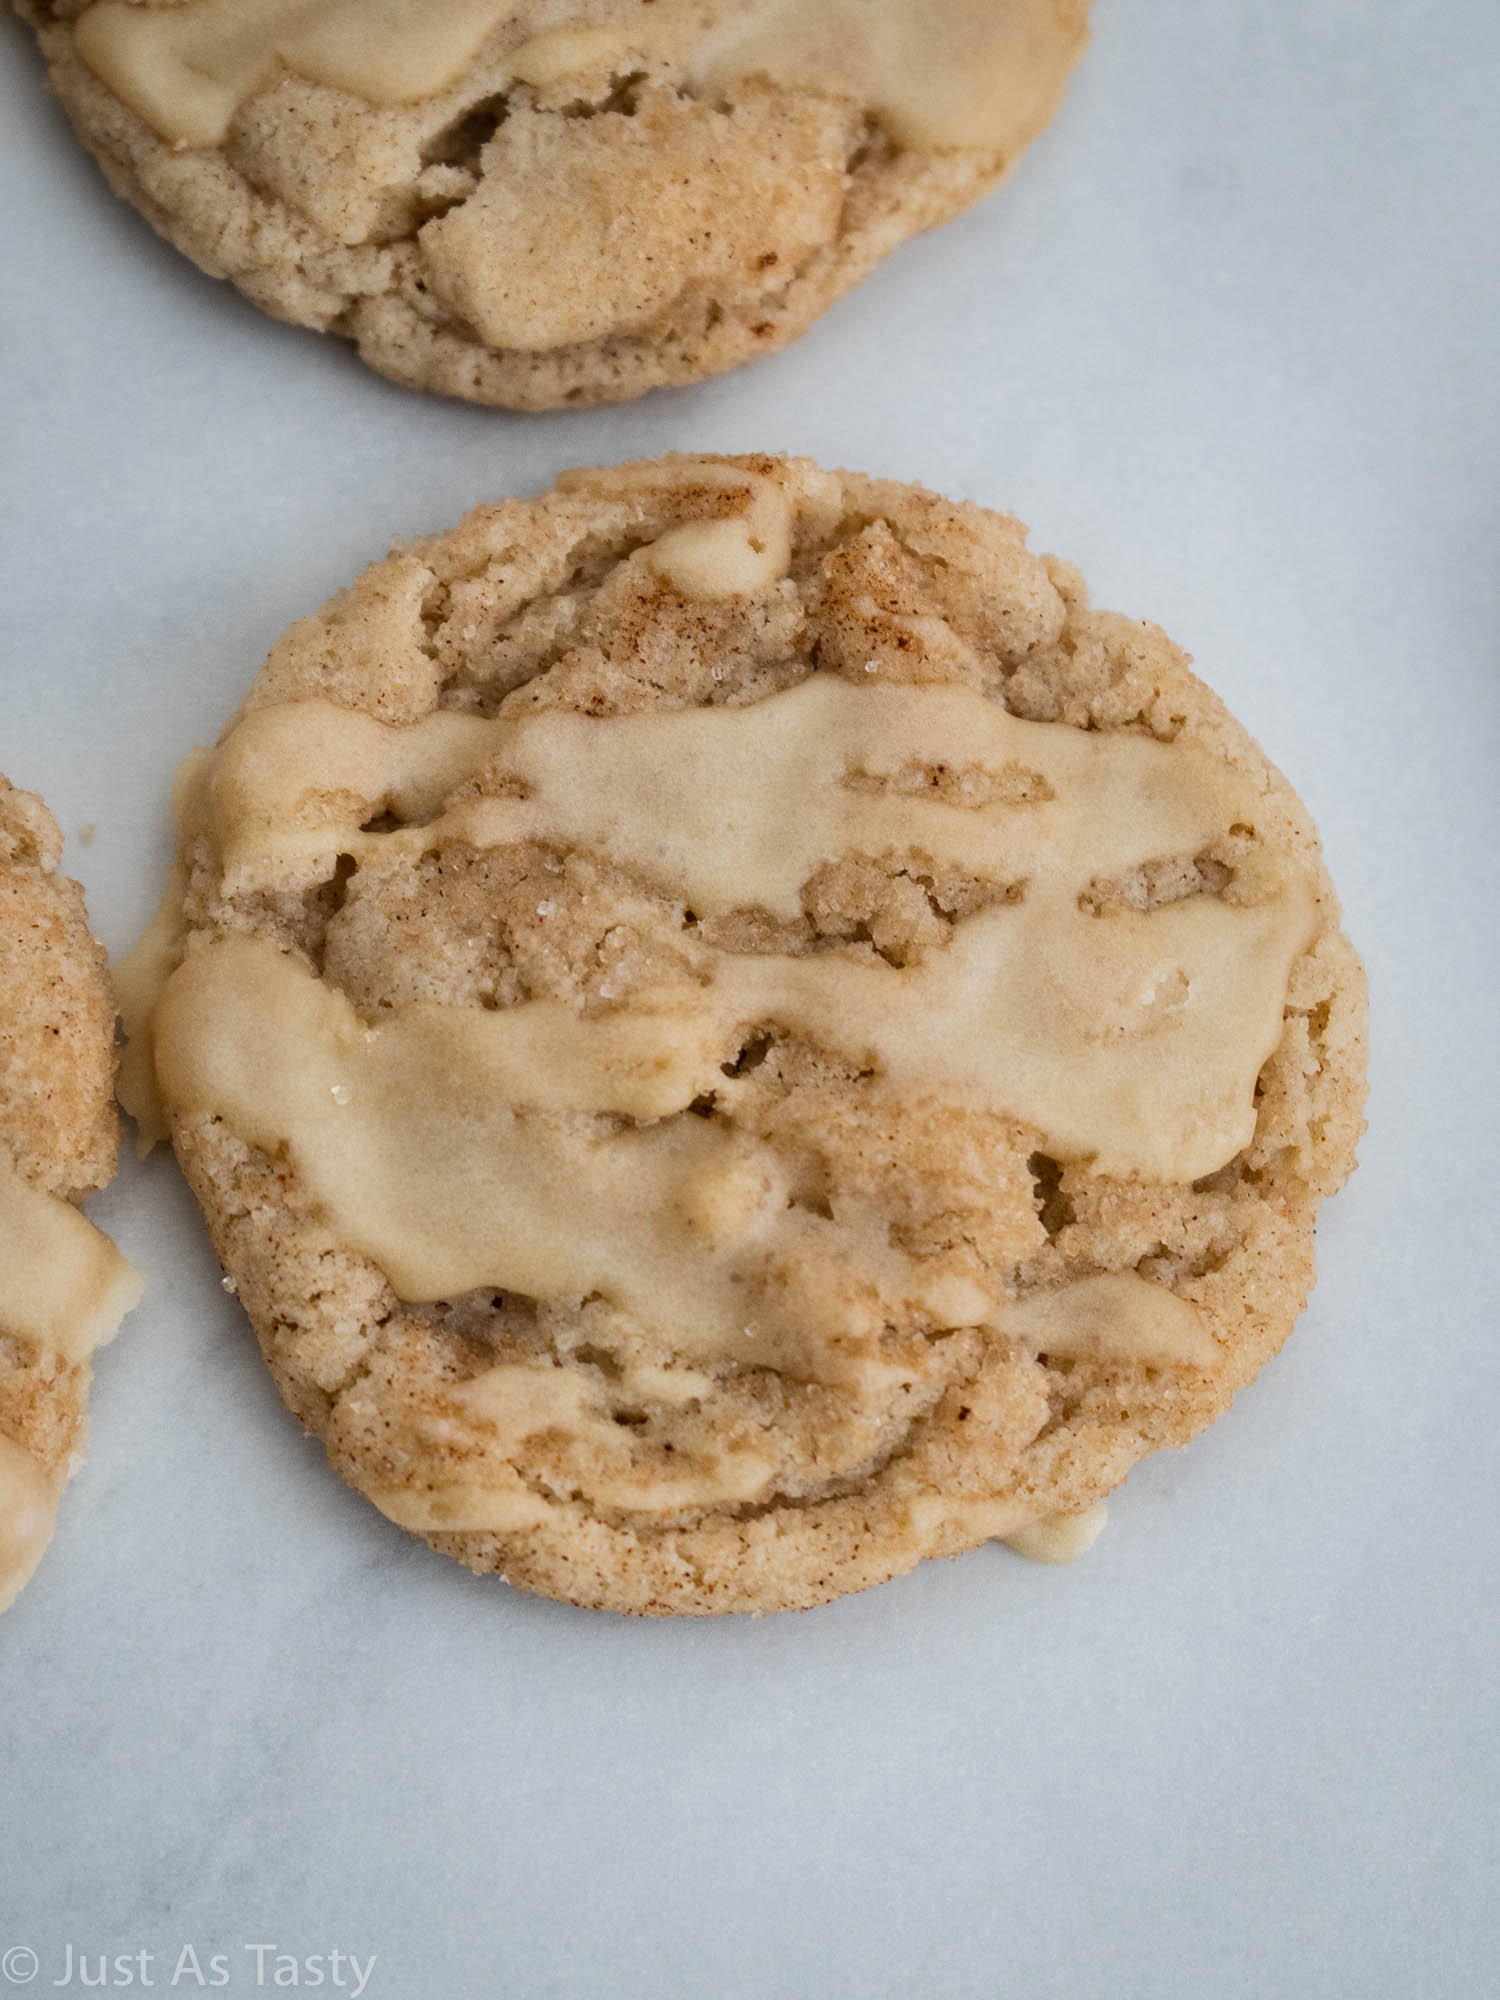 Close-up of a maple glazed snickerdoodle cookie.